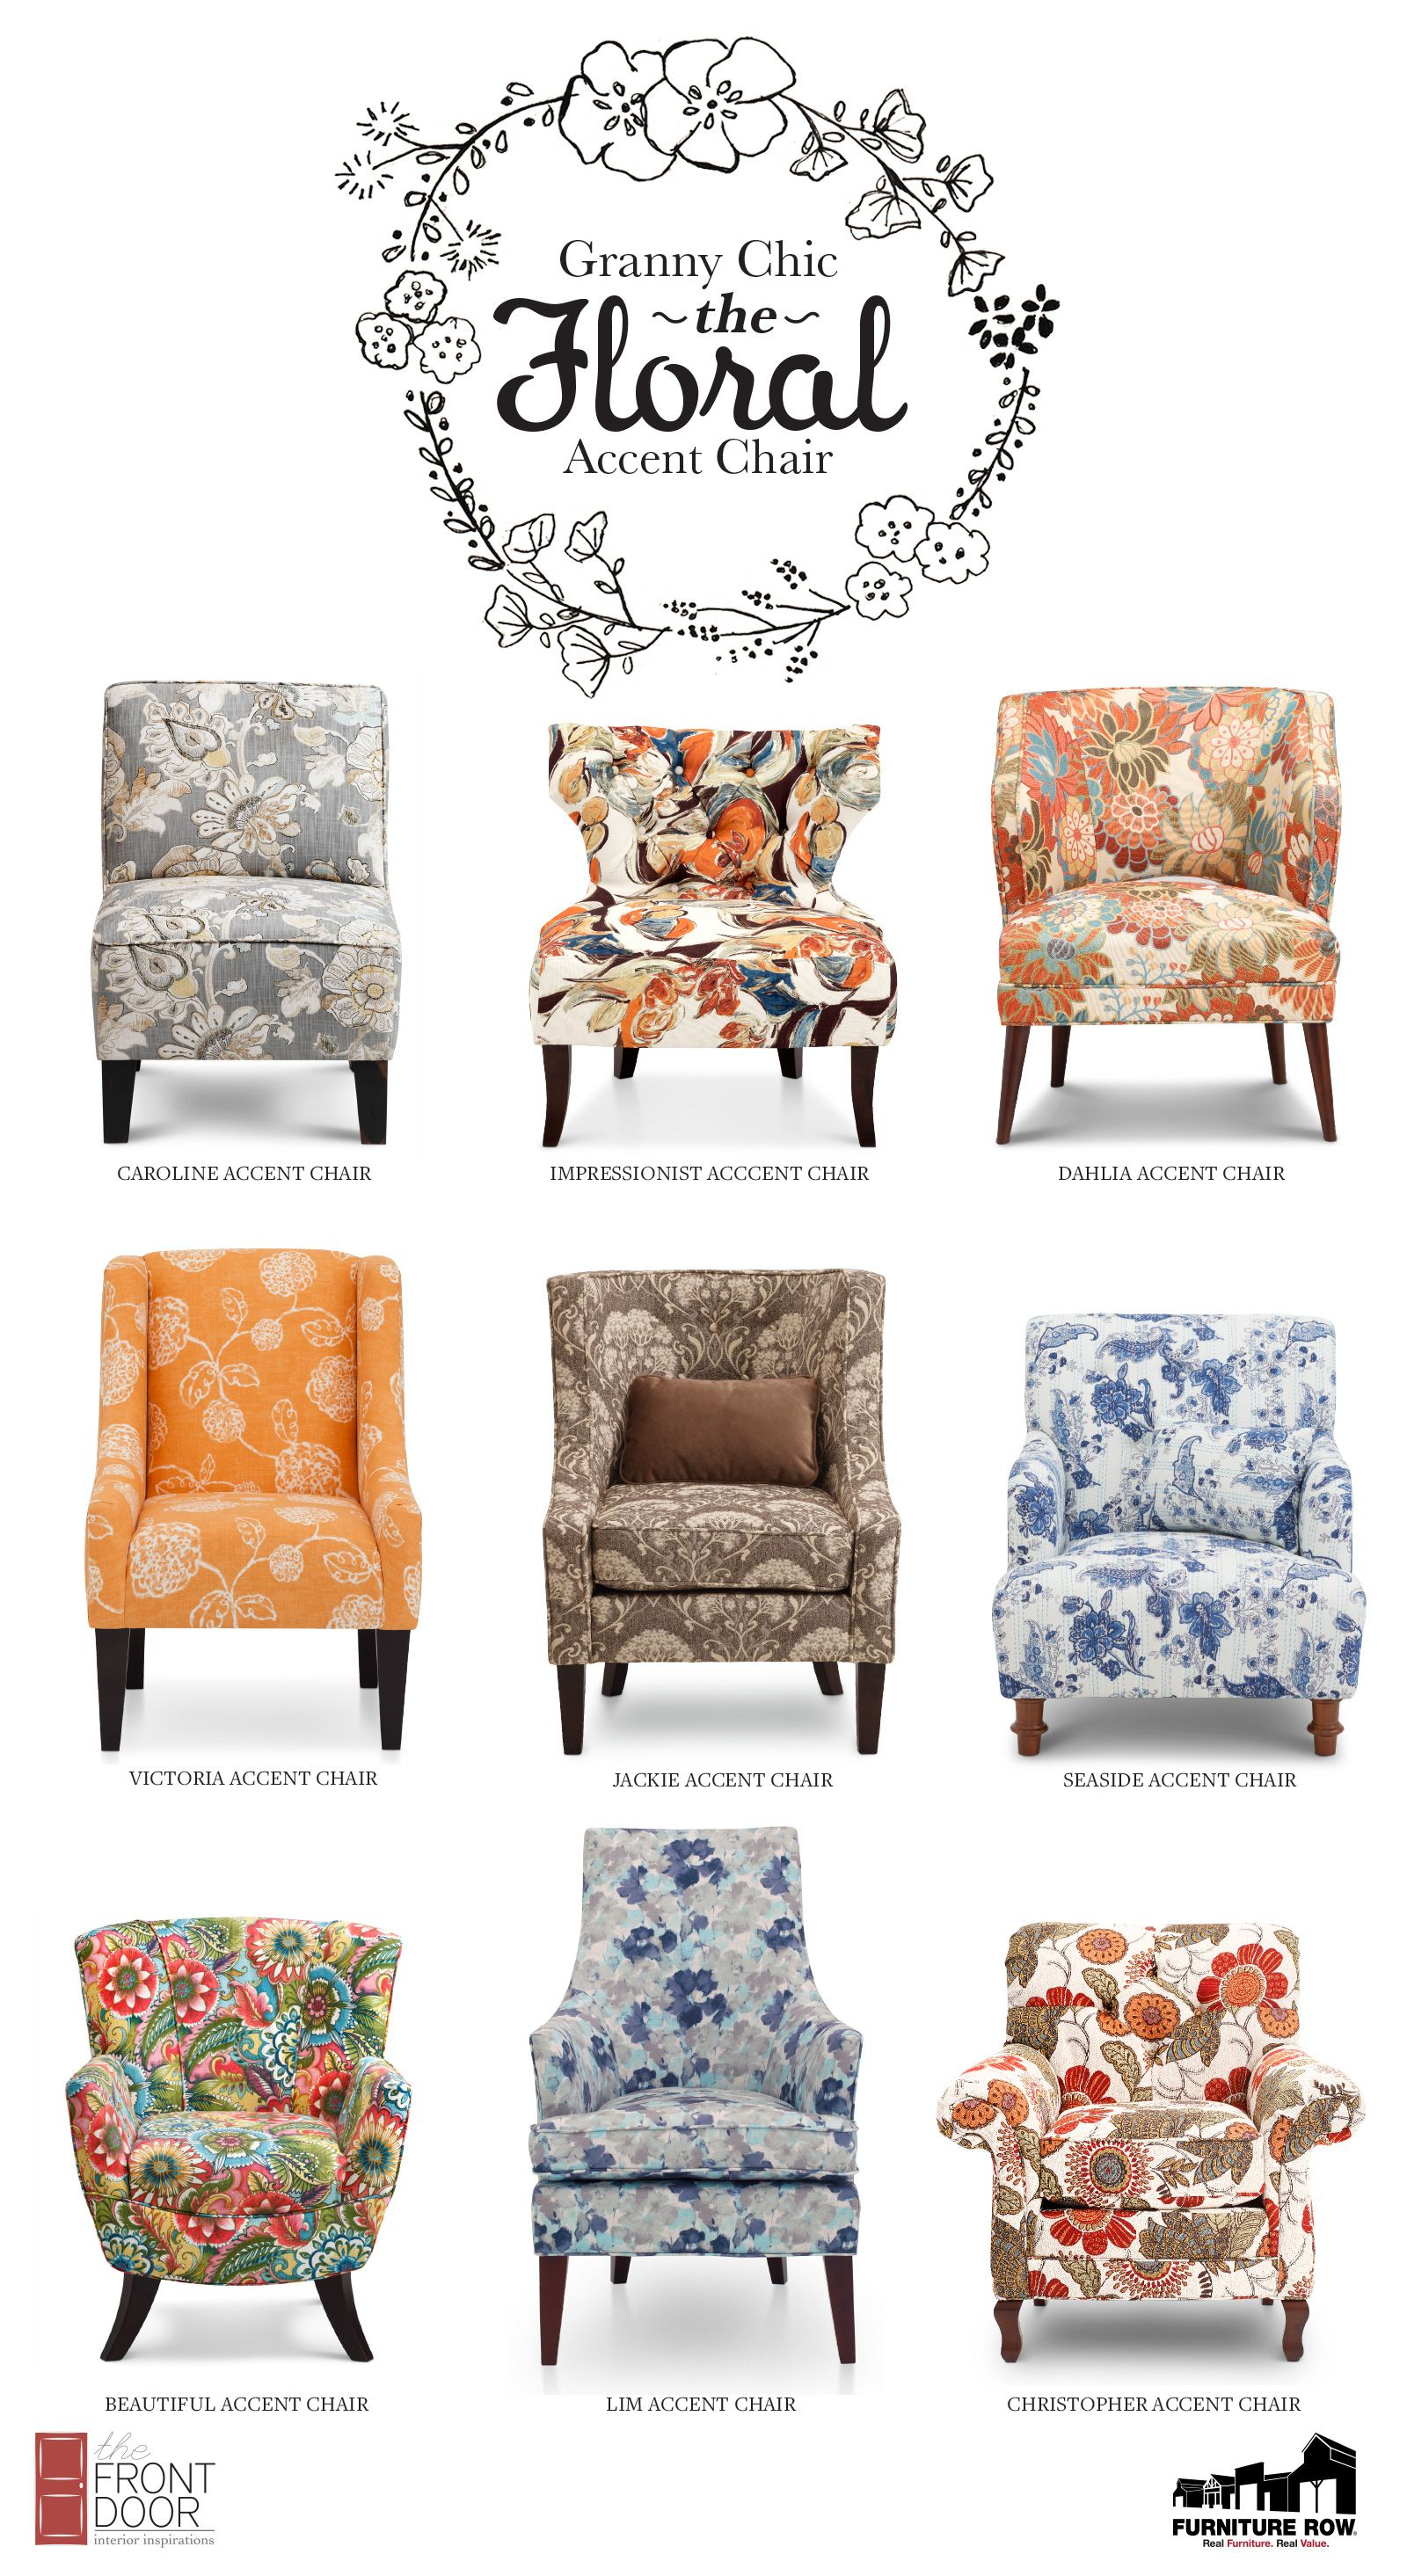 Granny Chic The Floral Accent Chair The Front Door Floral Accent Chair Floral Chair Living Room Shabby Chic Furniture